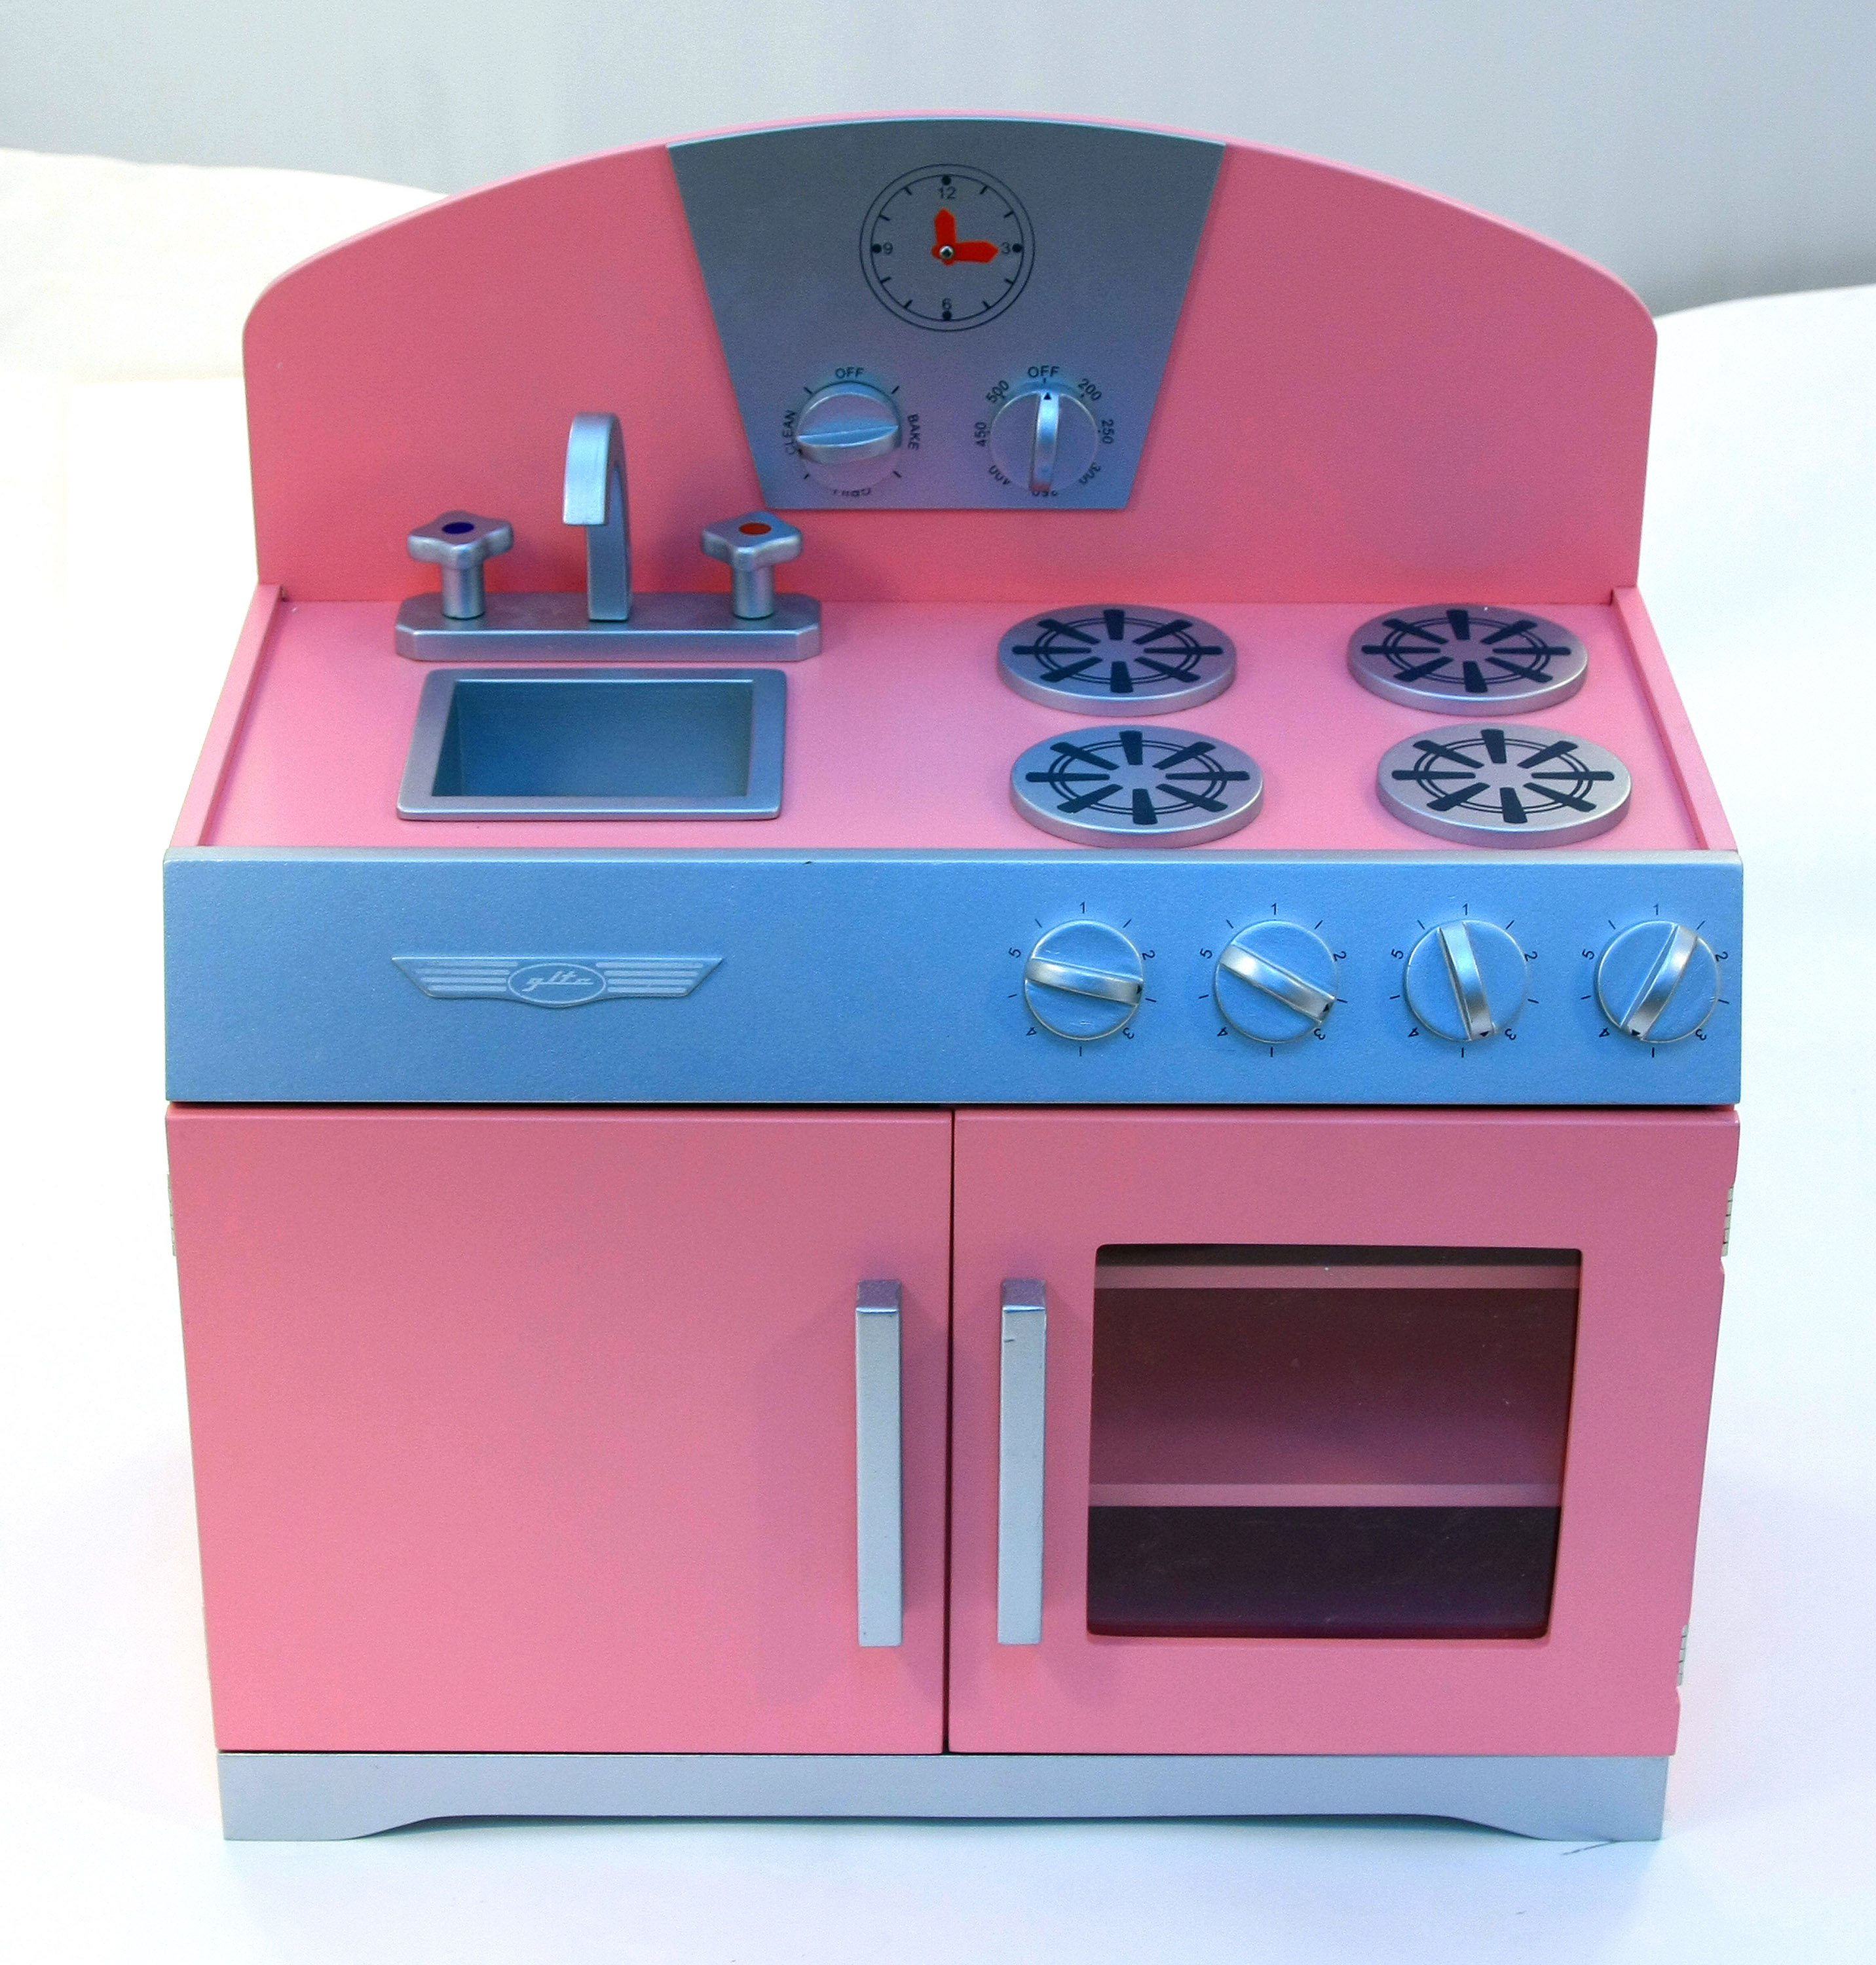 A+ Childsupply M9011 Retro Cooking Range with Sink